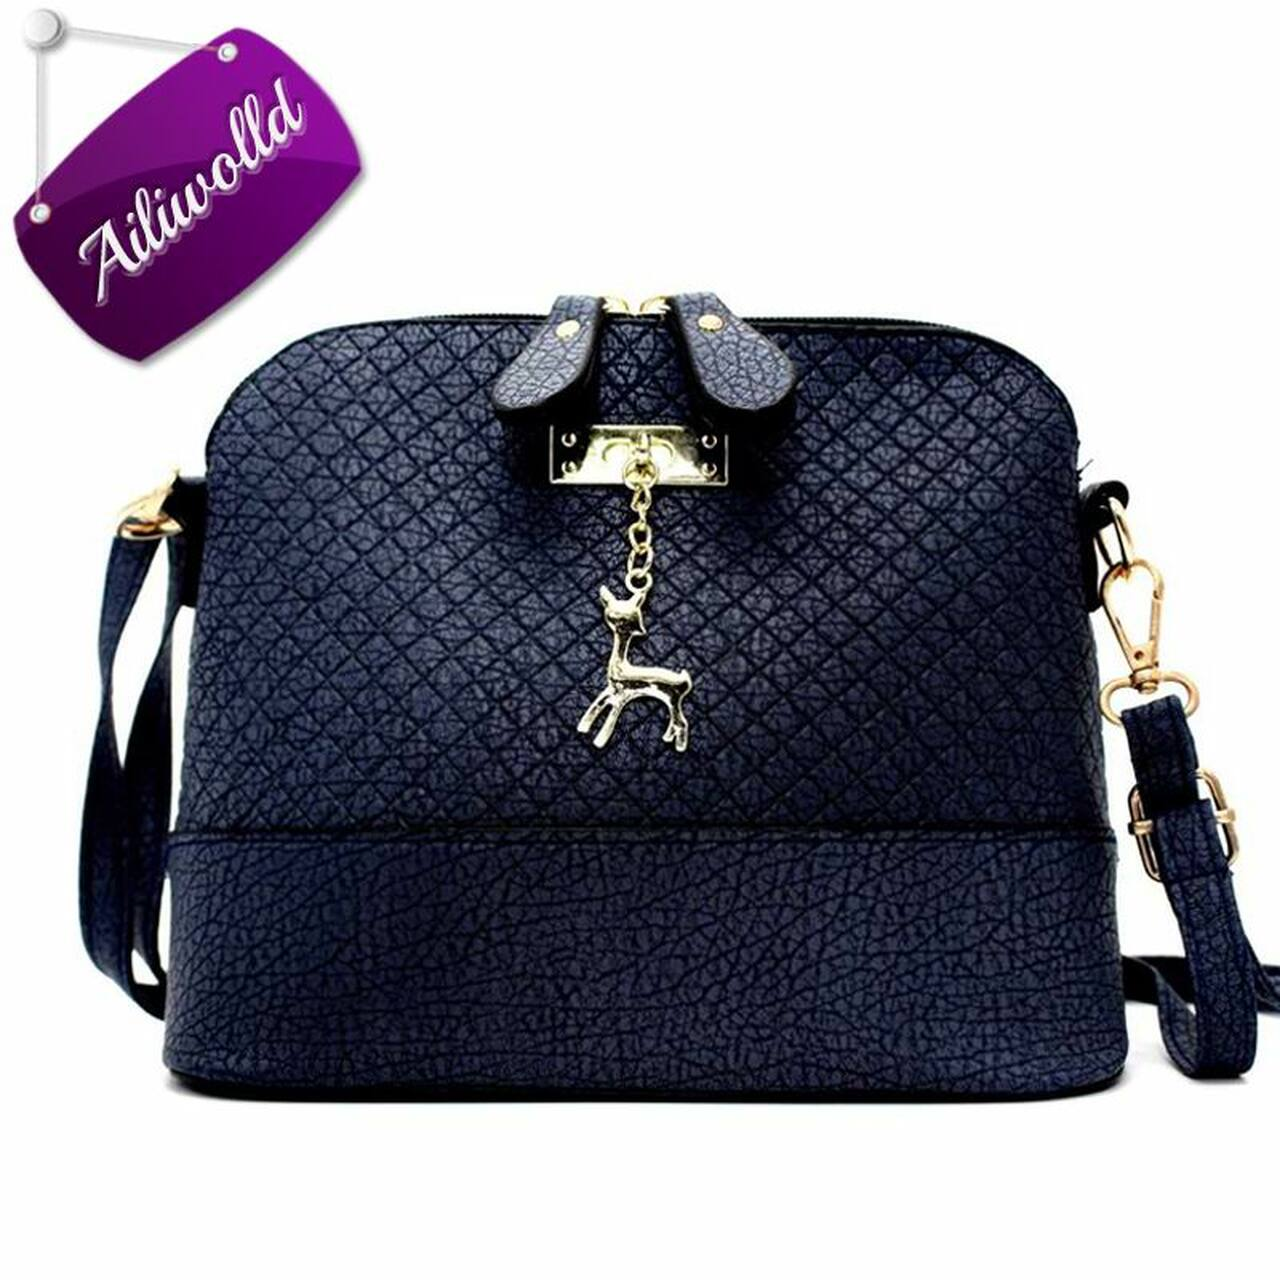 be180673793 2017 New Hot Shell Women Messenger Bags High Quality Cross Body Bag PU  Leather Mini Female ...